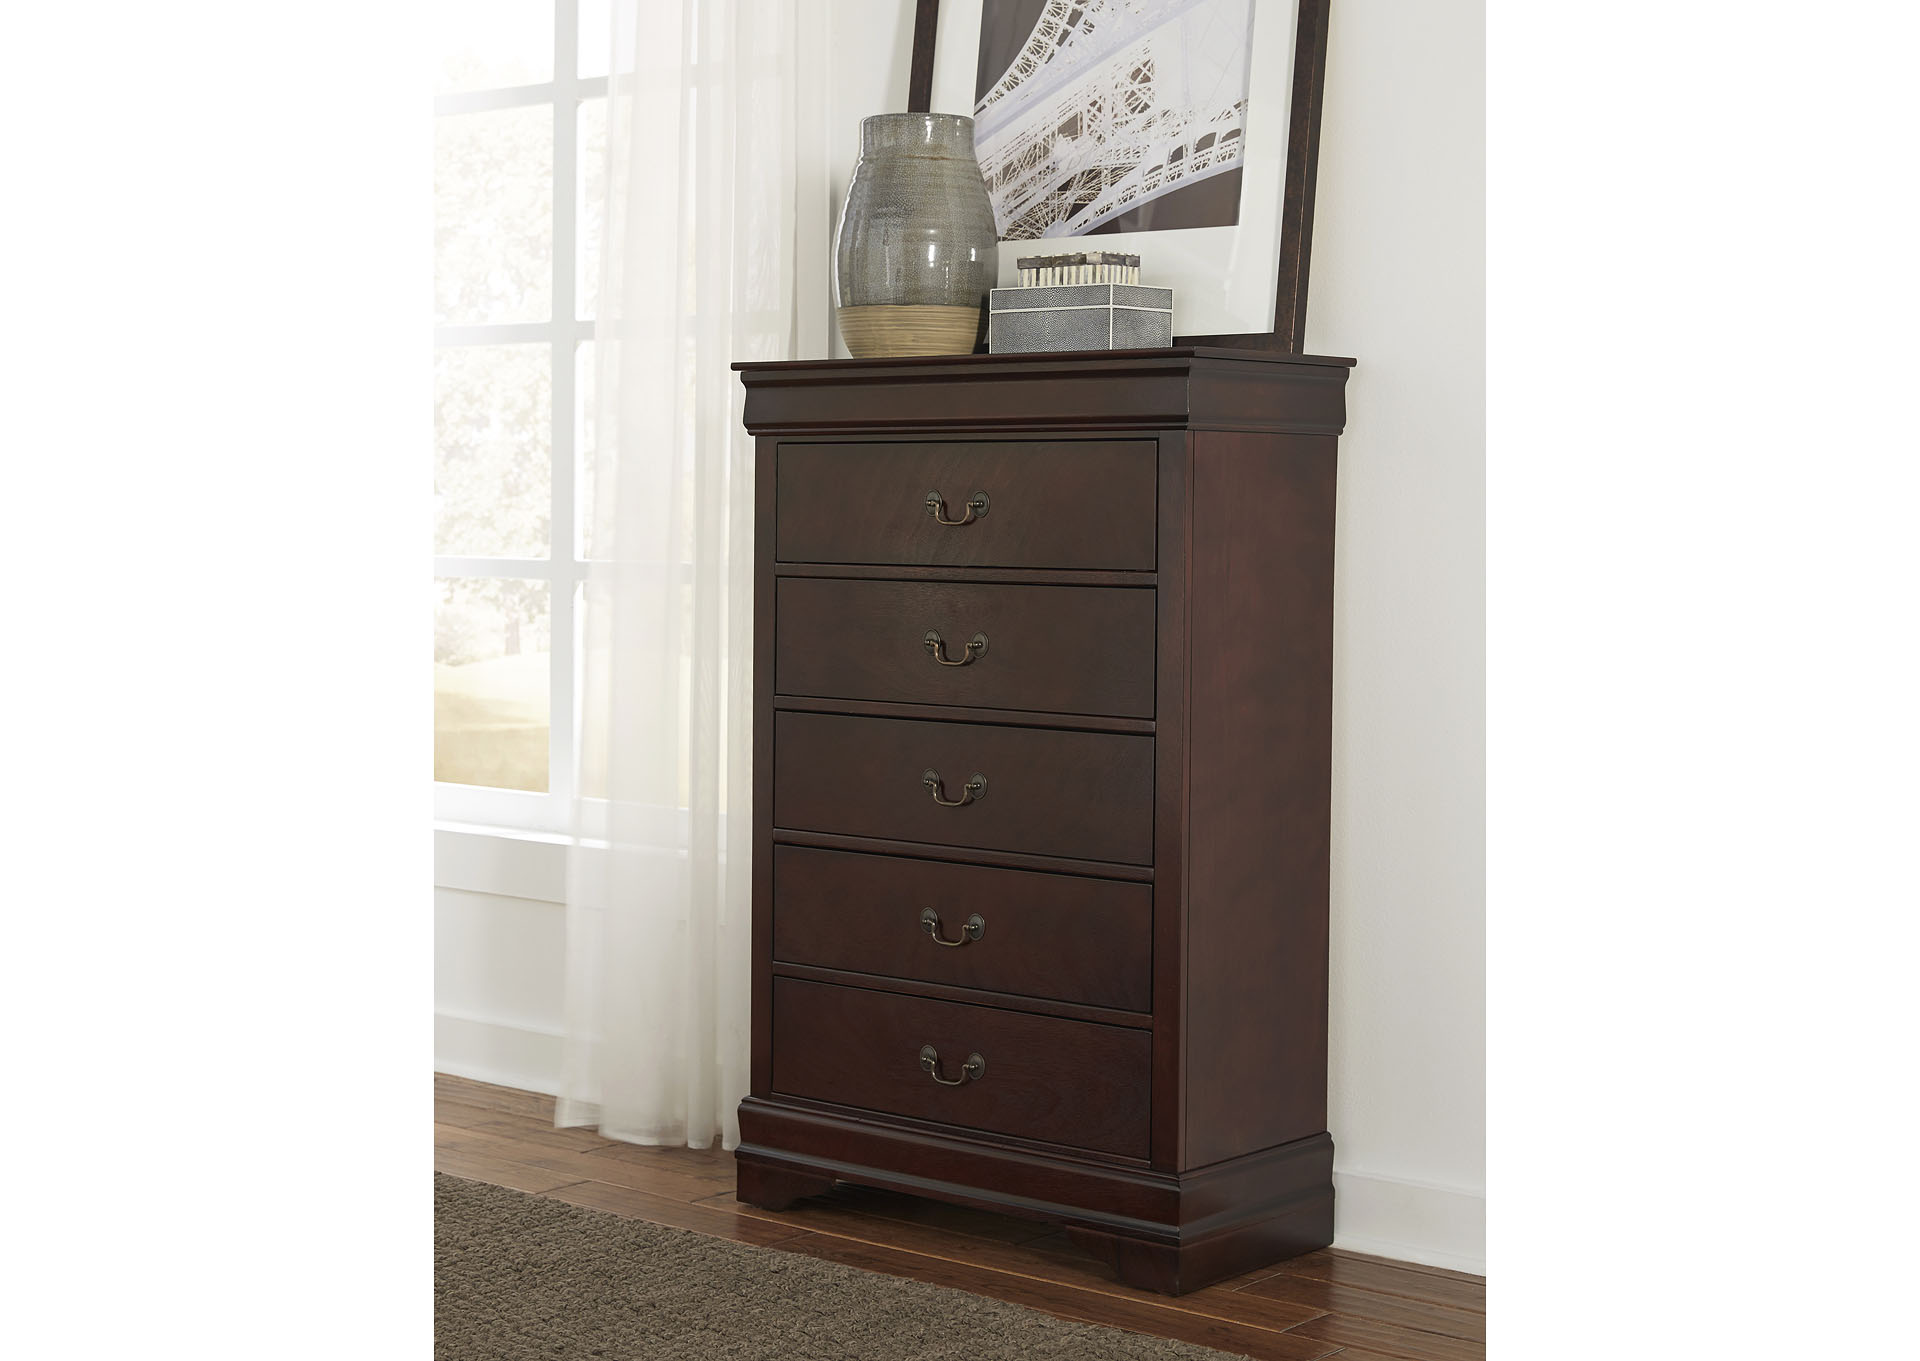 Marley Merlot Chest,Global Furniture USA